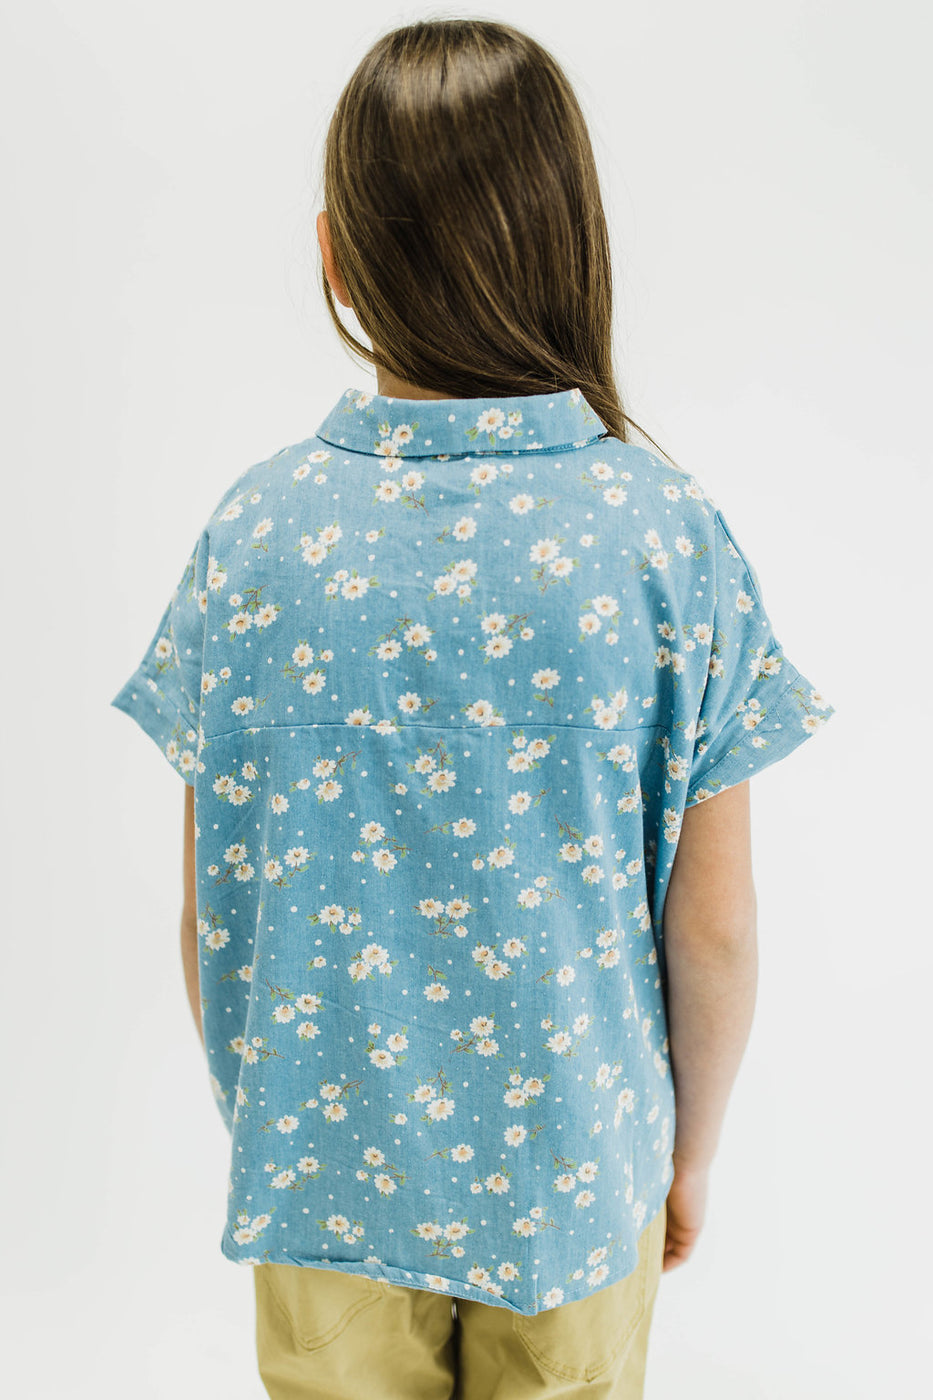 Denim Button Up w/Daisy Printed Pattern | ROOLEE Kids